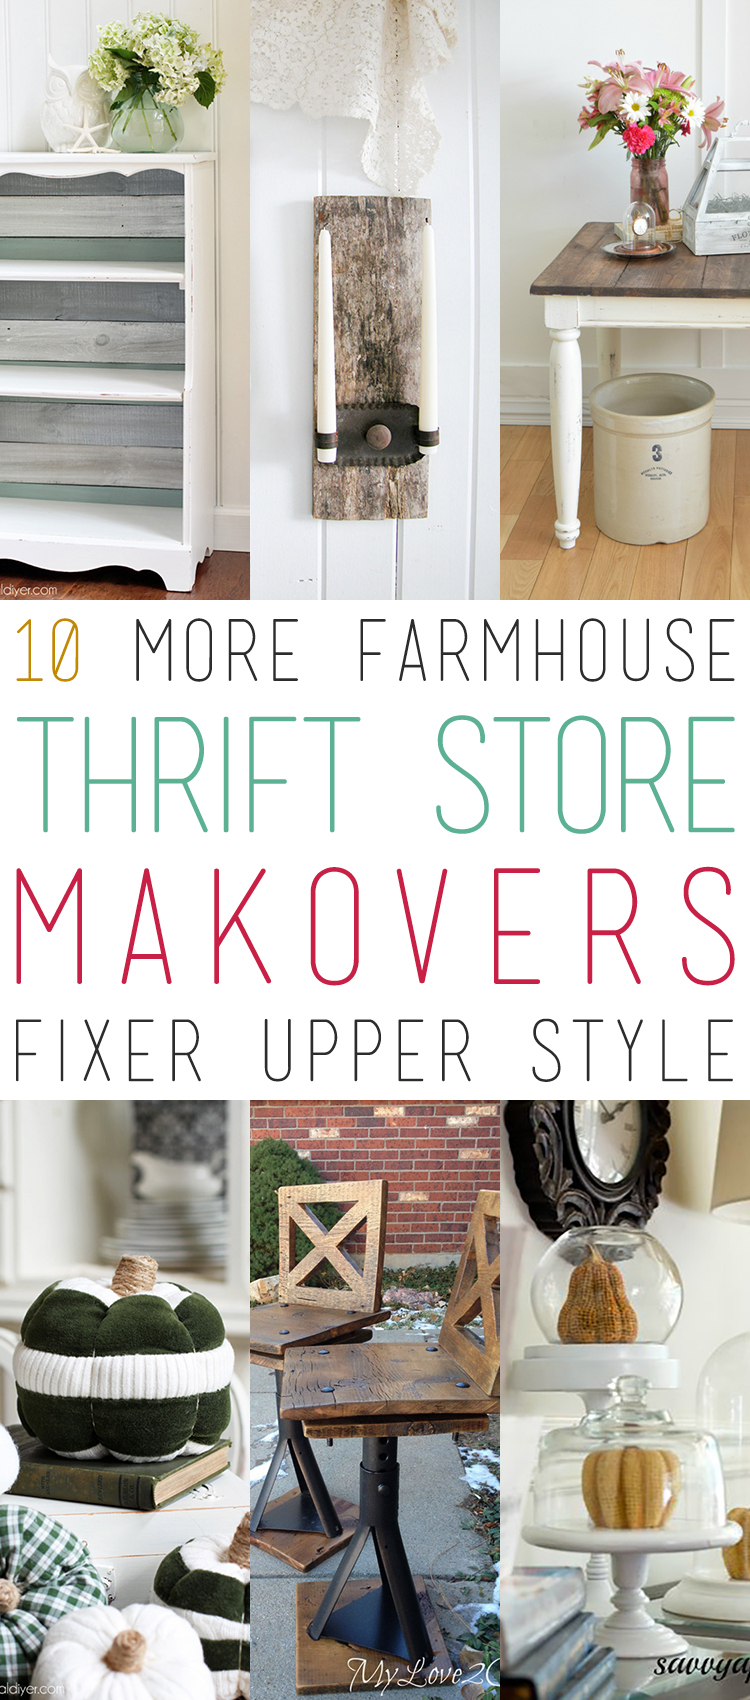 http://thecottagemarket.com/wp-content/uploads/2016/10/Thrift-TOWER-001.jpg